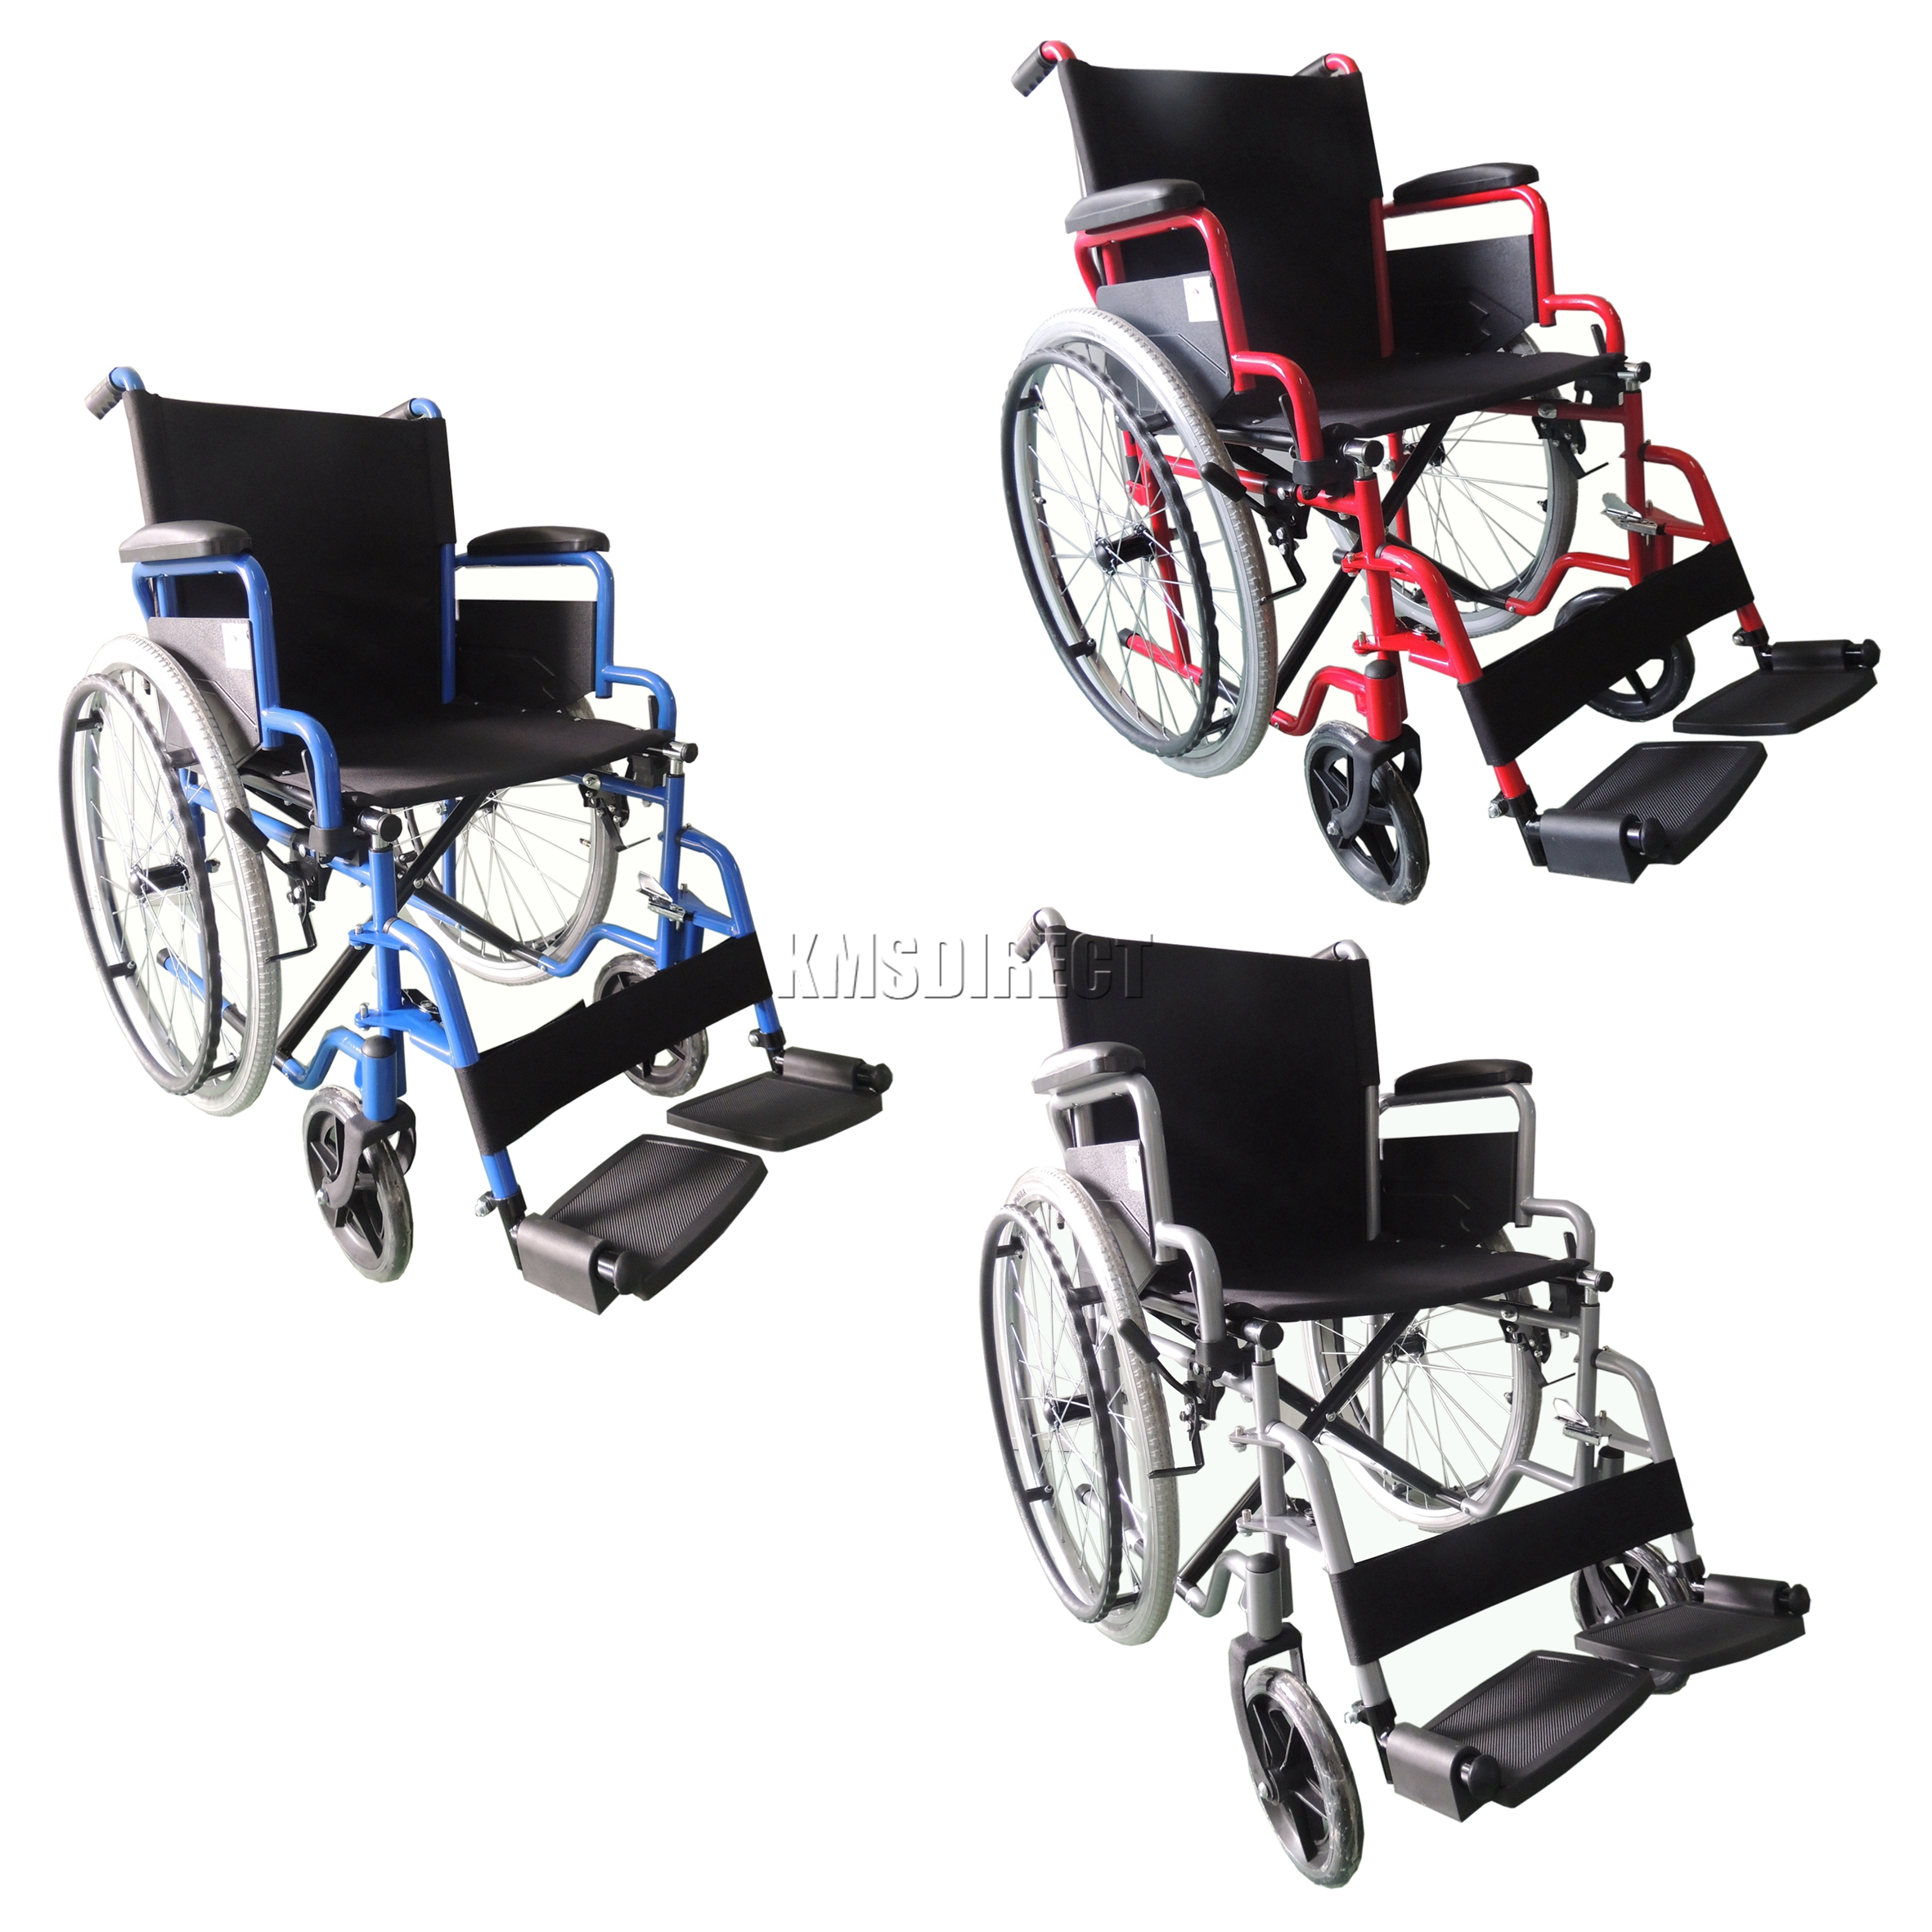 liberty 312 power chair red counter chairs foxhunter self propelled folding lightweight transit